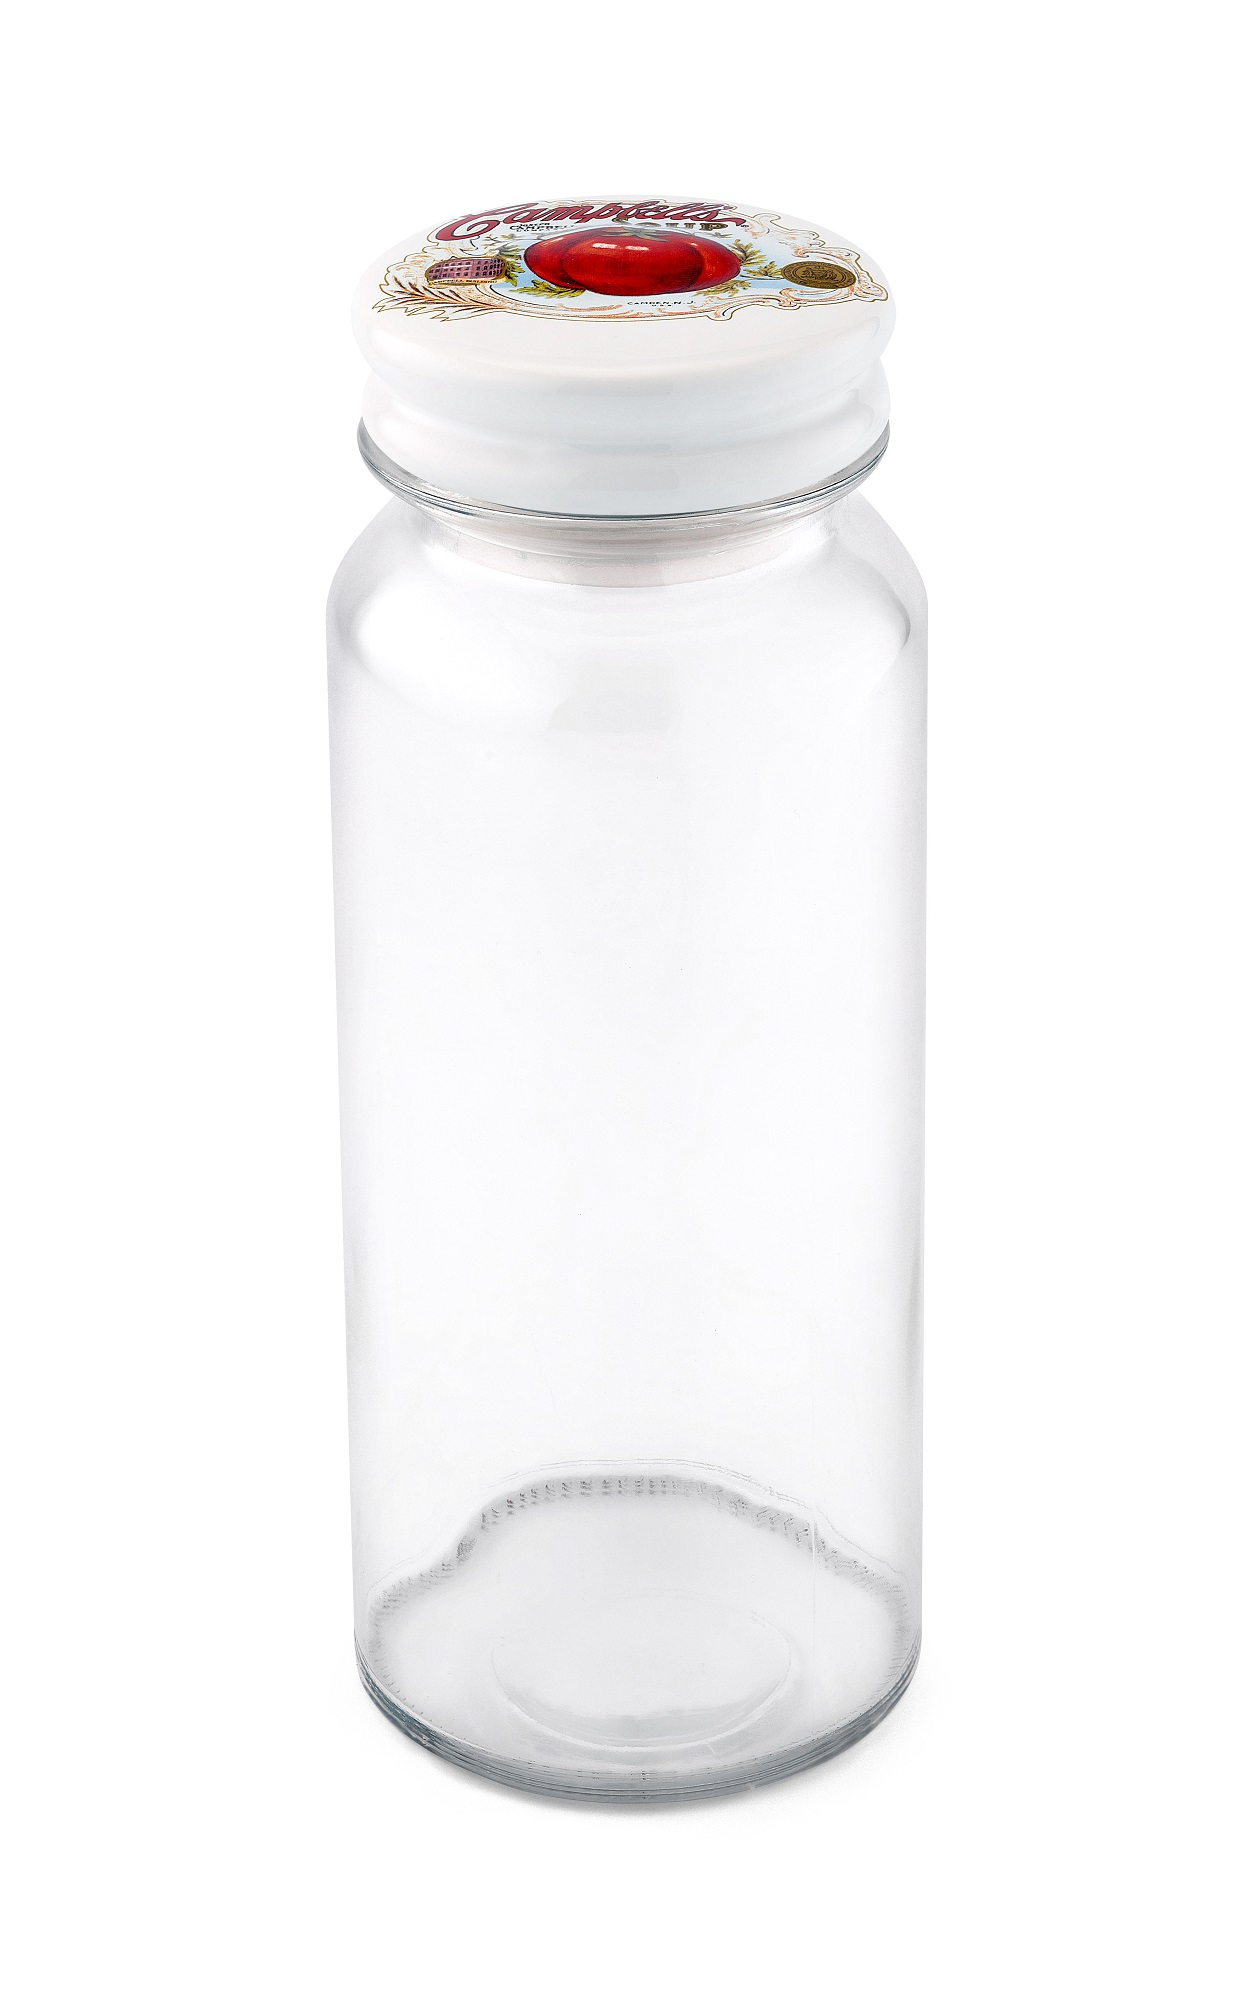 CAMPBELLS WMTL273B GLASS CONTAINER 62OZ WITH EMBOSSED